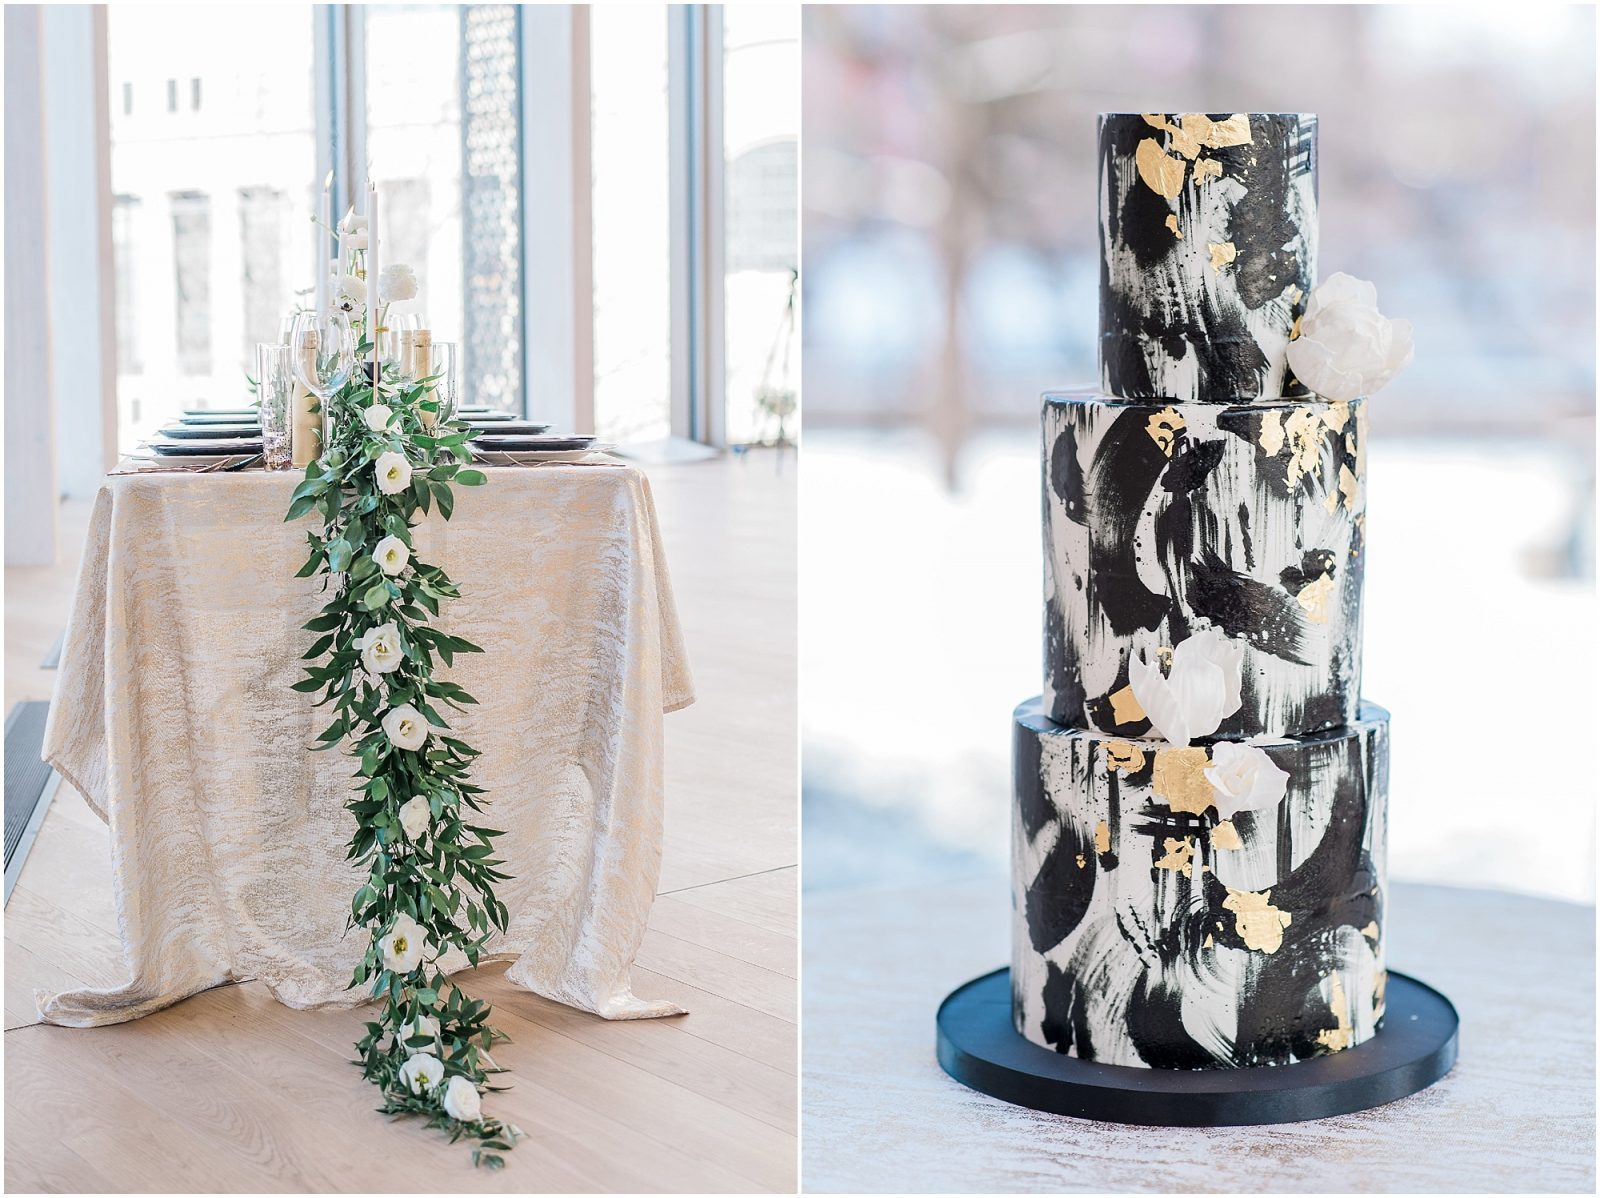 Wedding O'Born Room NAC Ottawa - New Years Glam Wedding Inspiration - floral table runner